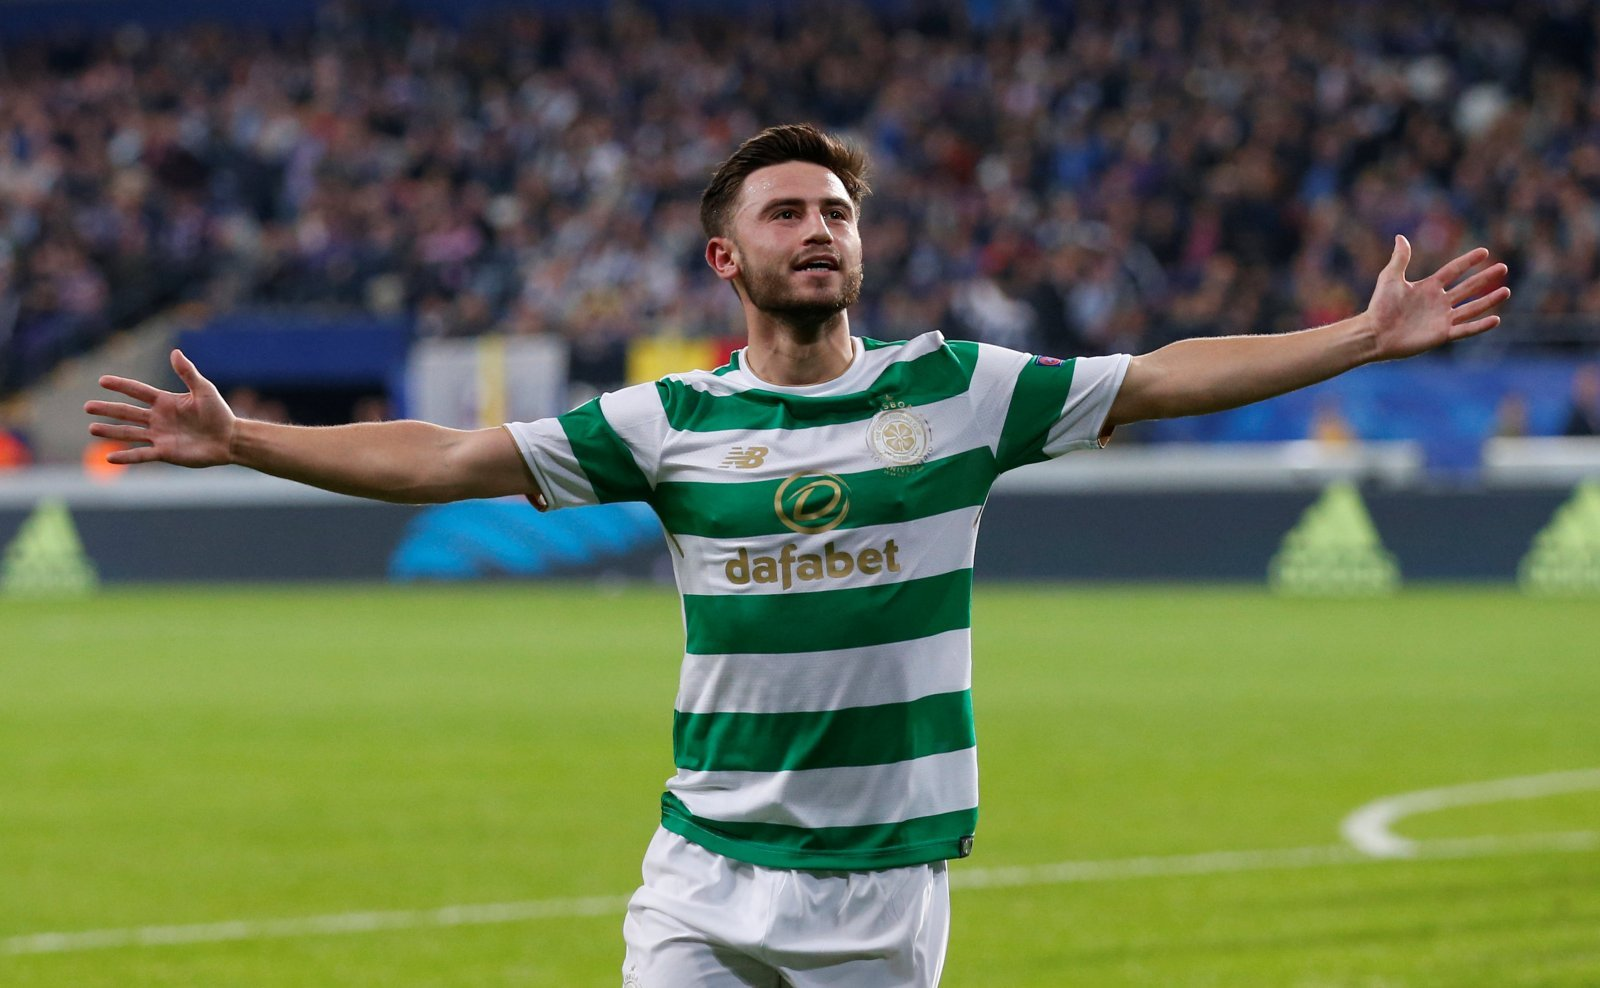 Patrick Roberts won't be making Celtic return, much to the disappointment of many fans